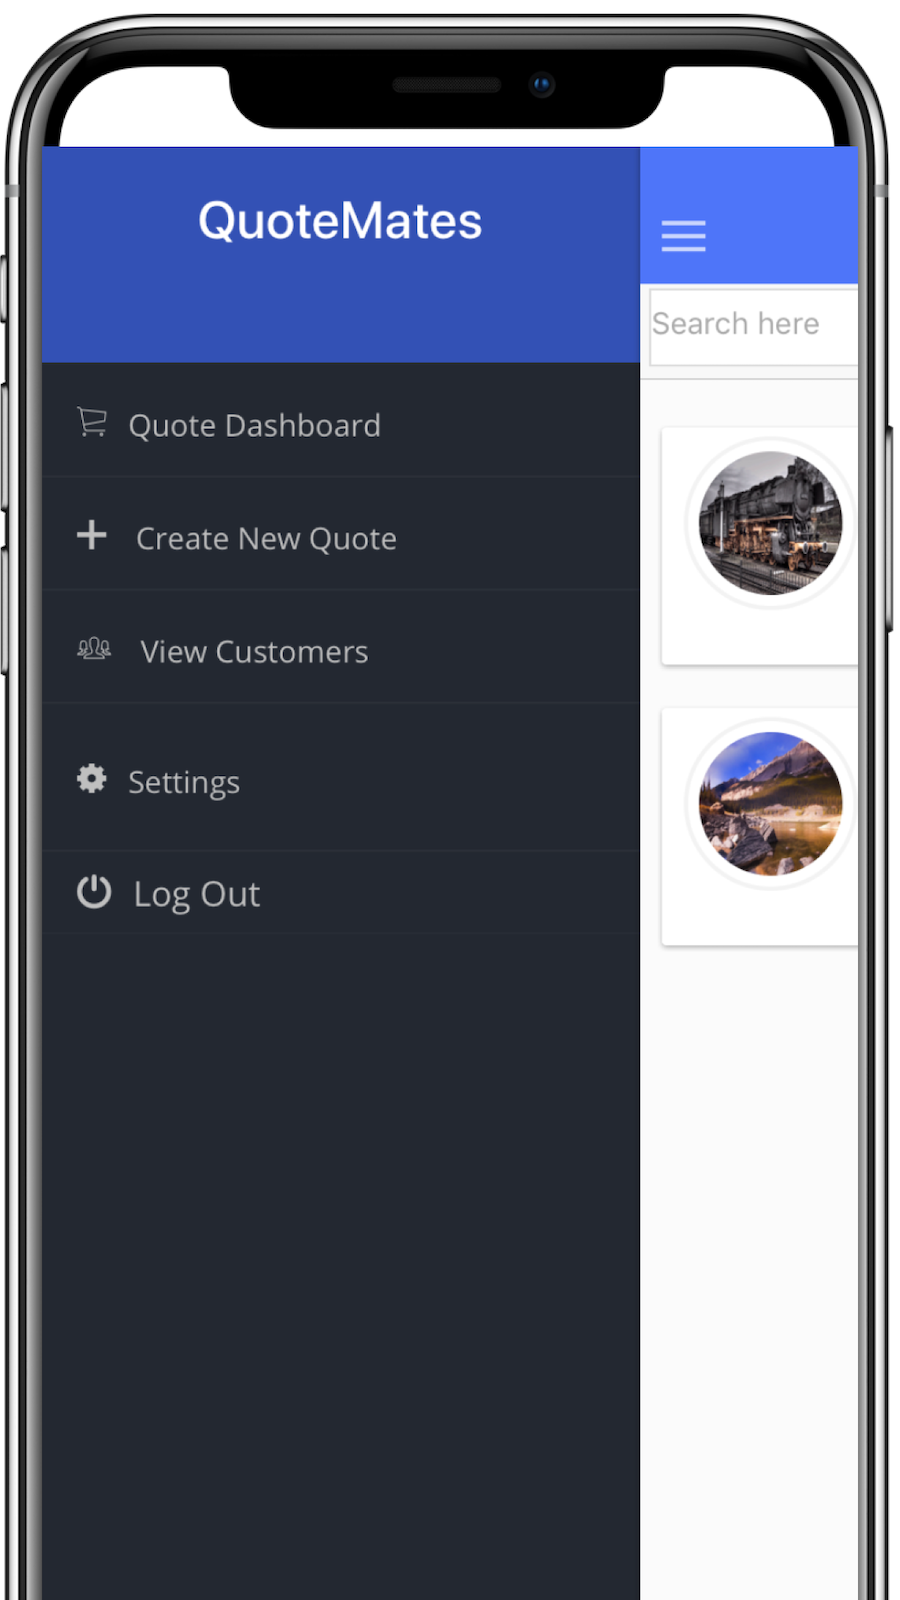 QuoteMates Mobile App - iOS and Android